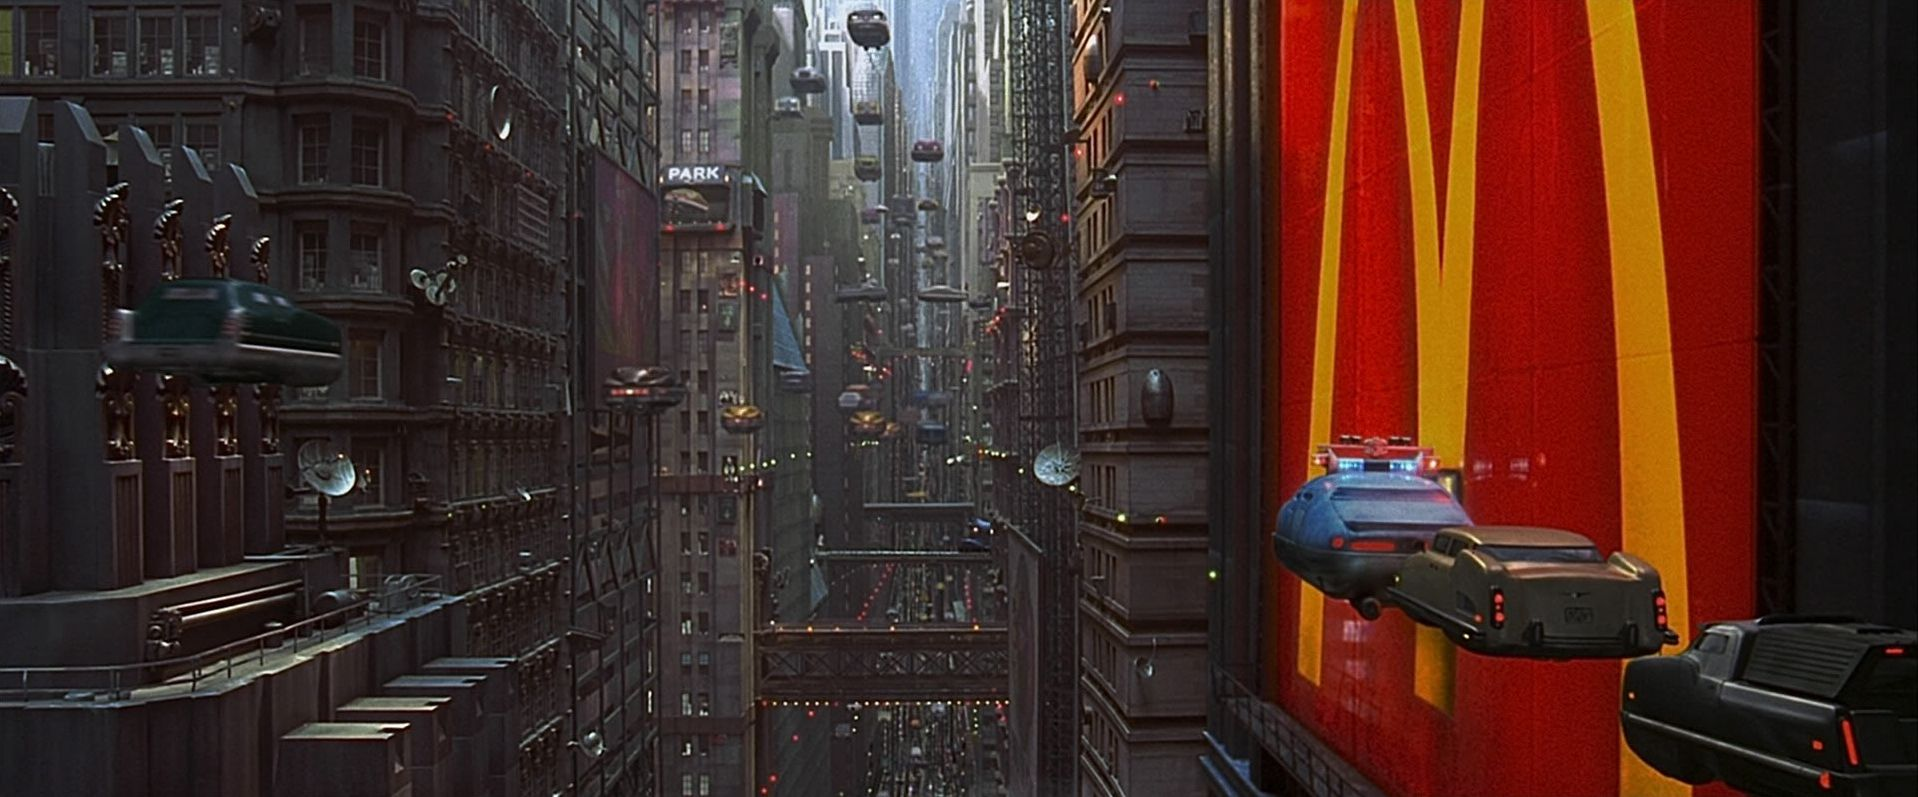 The Fifth Element city architecture